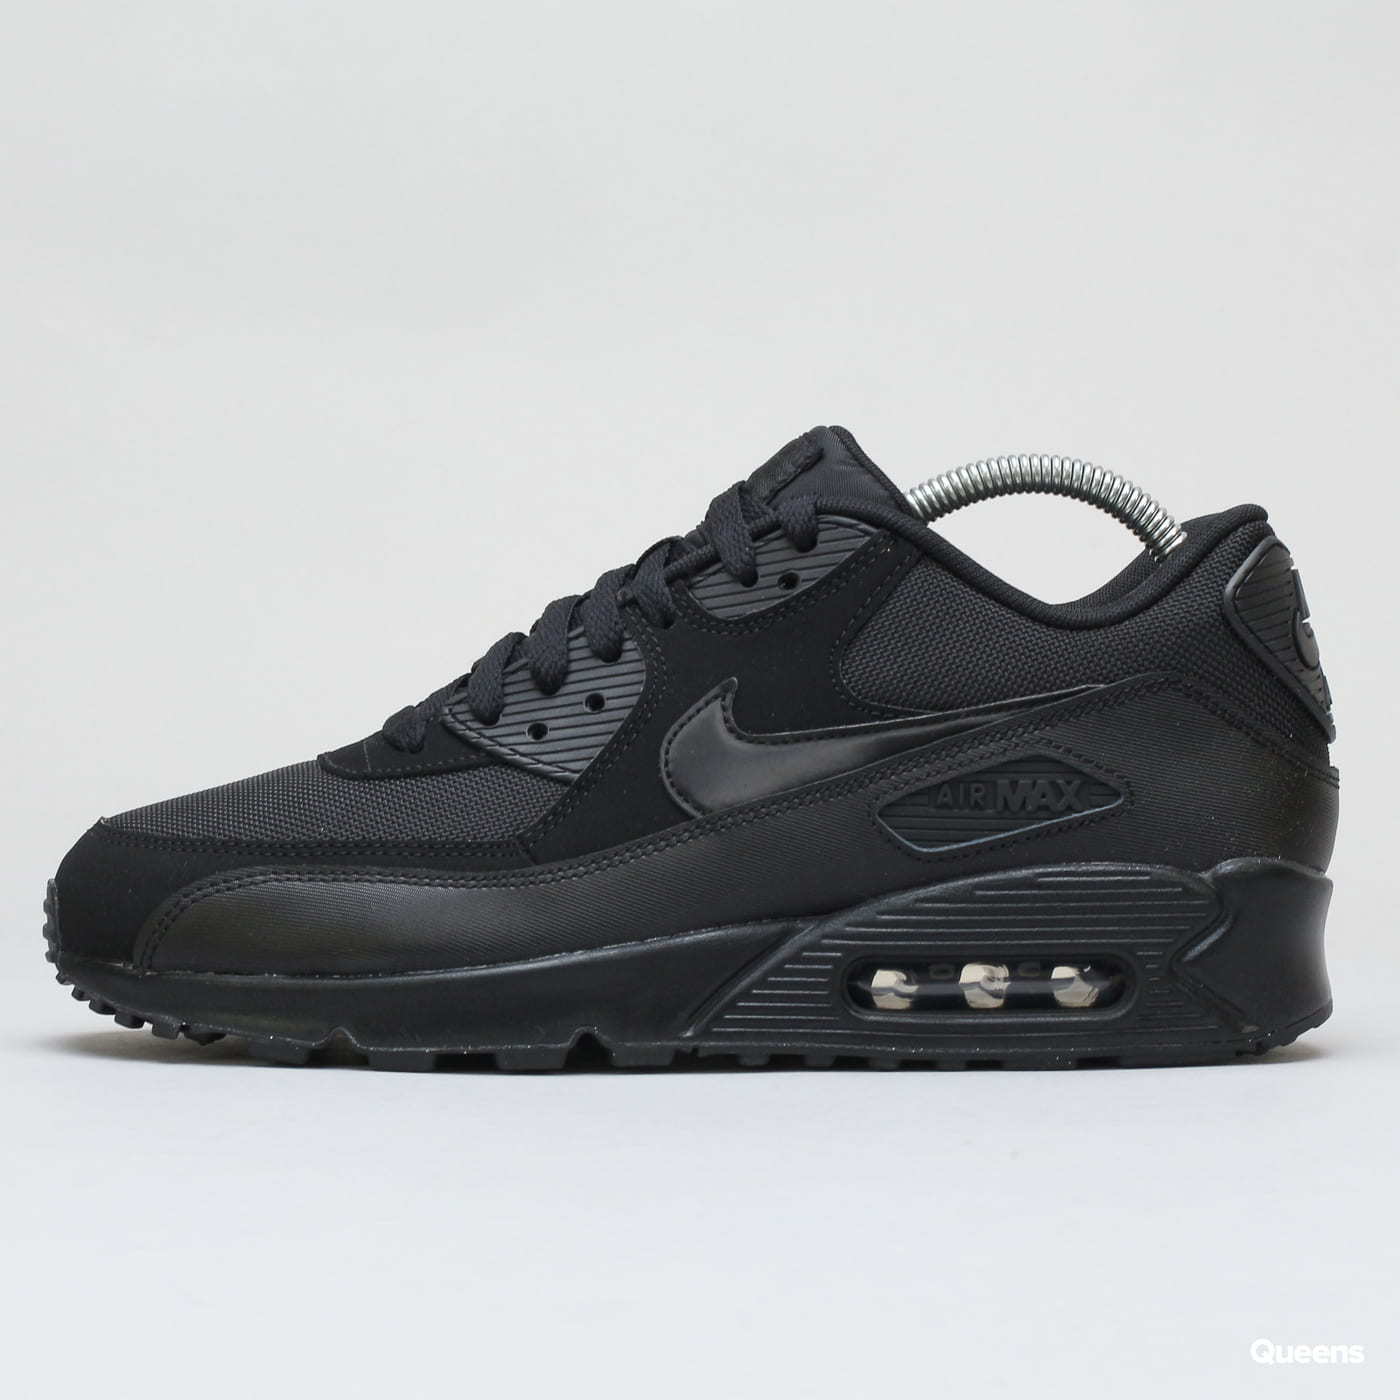 Nike Air Max 90 Essential black / black - black - black